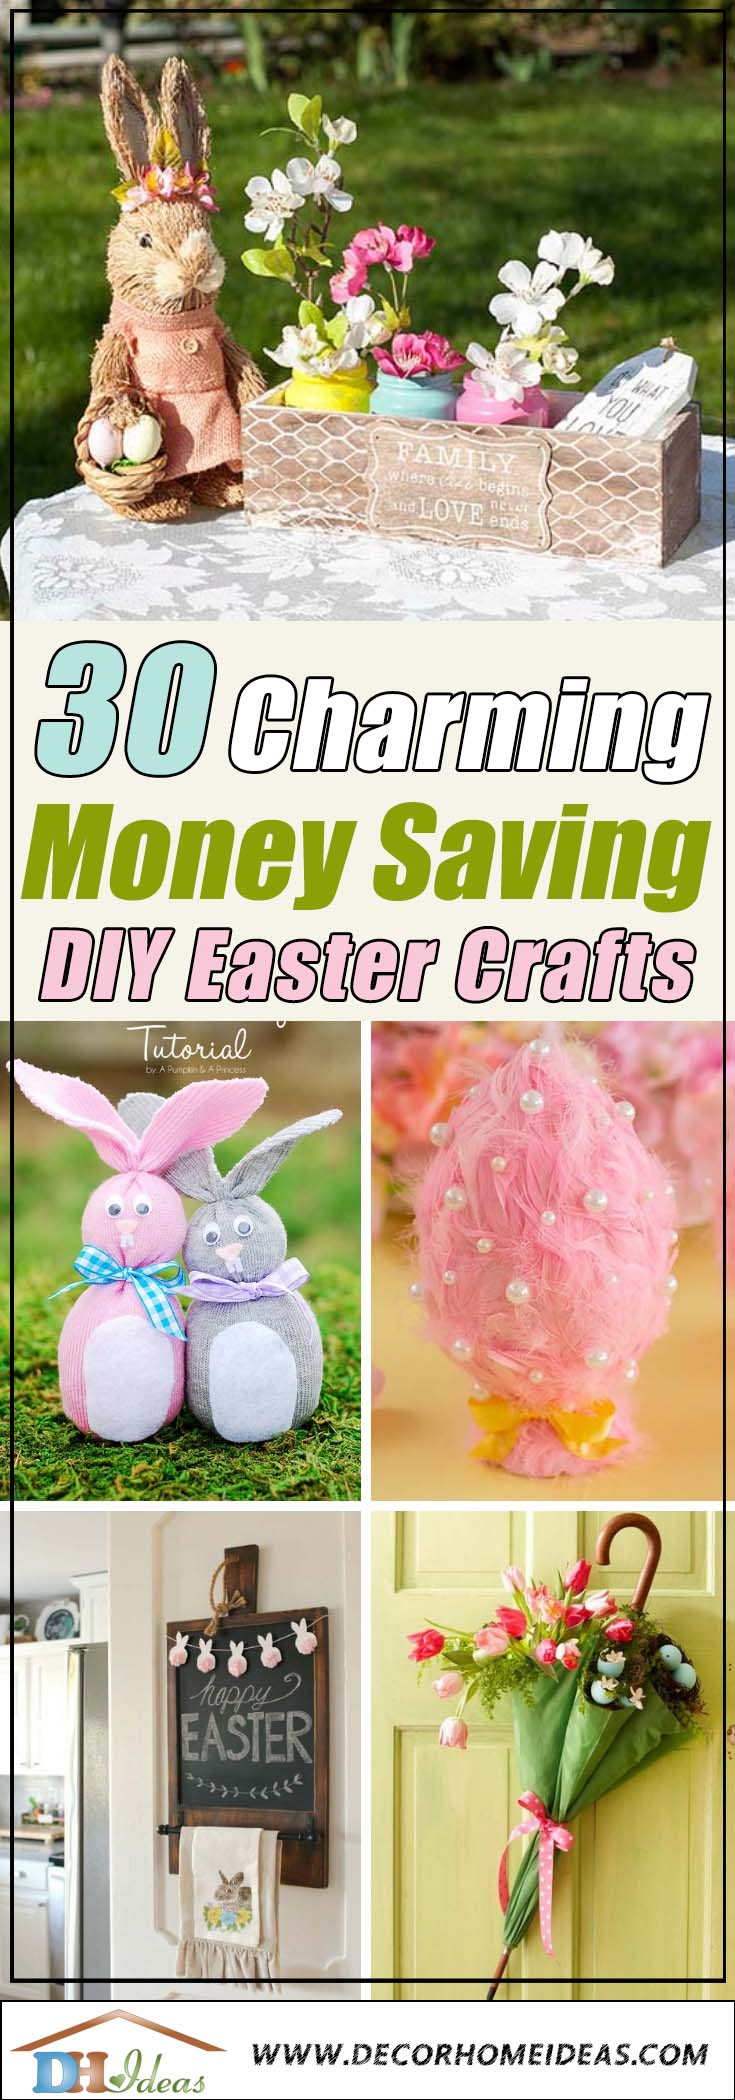 30 Charming and money saving DIY Easter Crafts #easter #crafts #diy #decorhomeideas